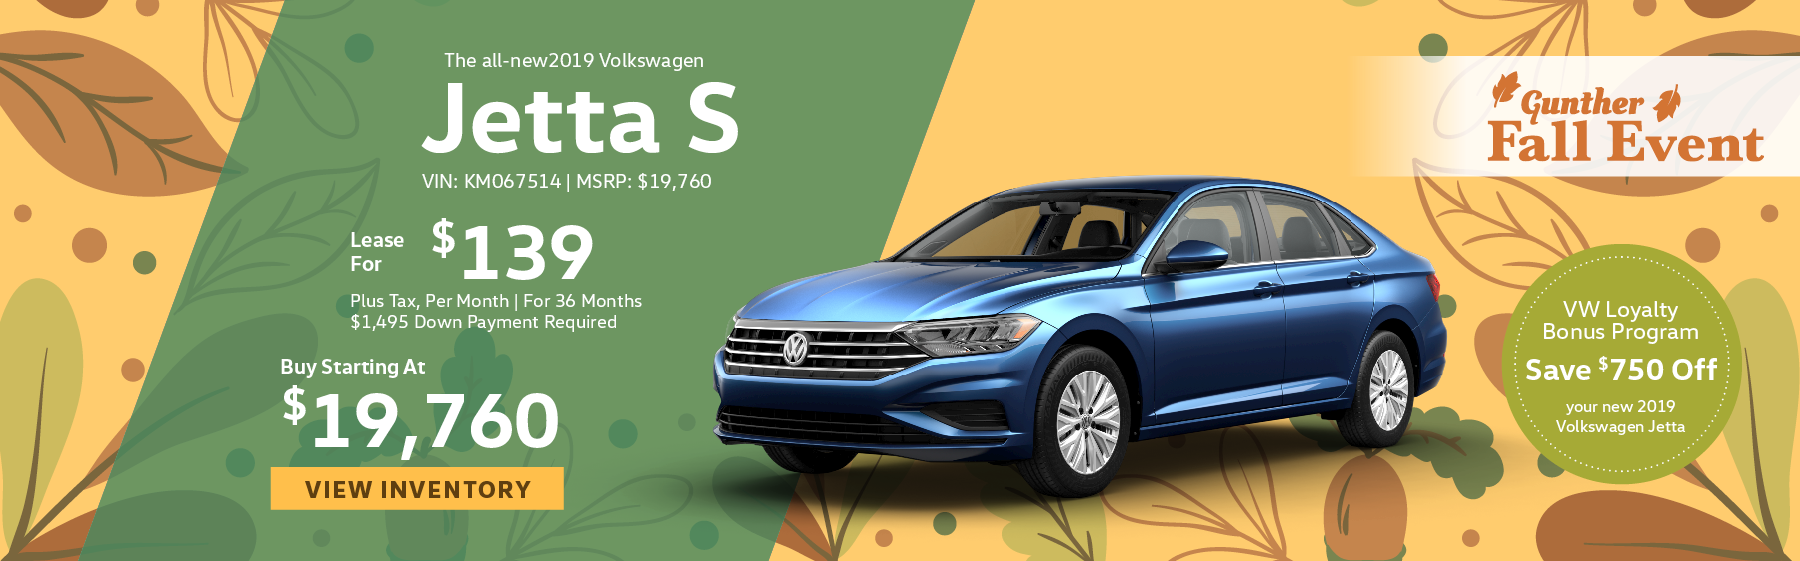 Lease the all-new 2019 Volkswagen Jetta S for $139 plus tax for 36 months. $1,495 Down payment required. Buy starting at $19,760. Save $750 off your new 2019 Volkswagen Jetta at Gunther Volkswagen of Coconut Creek.